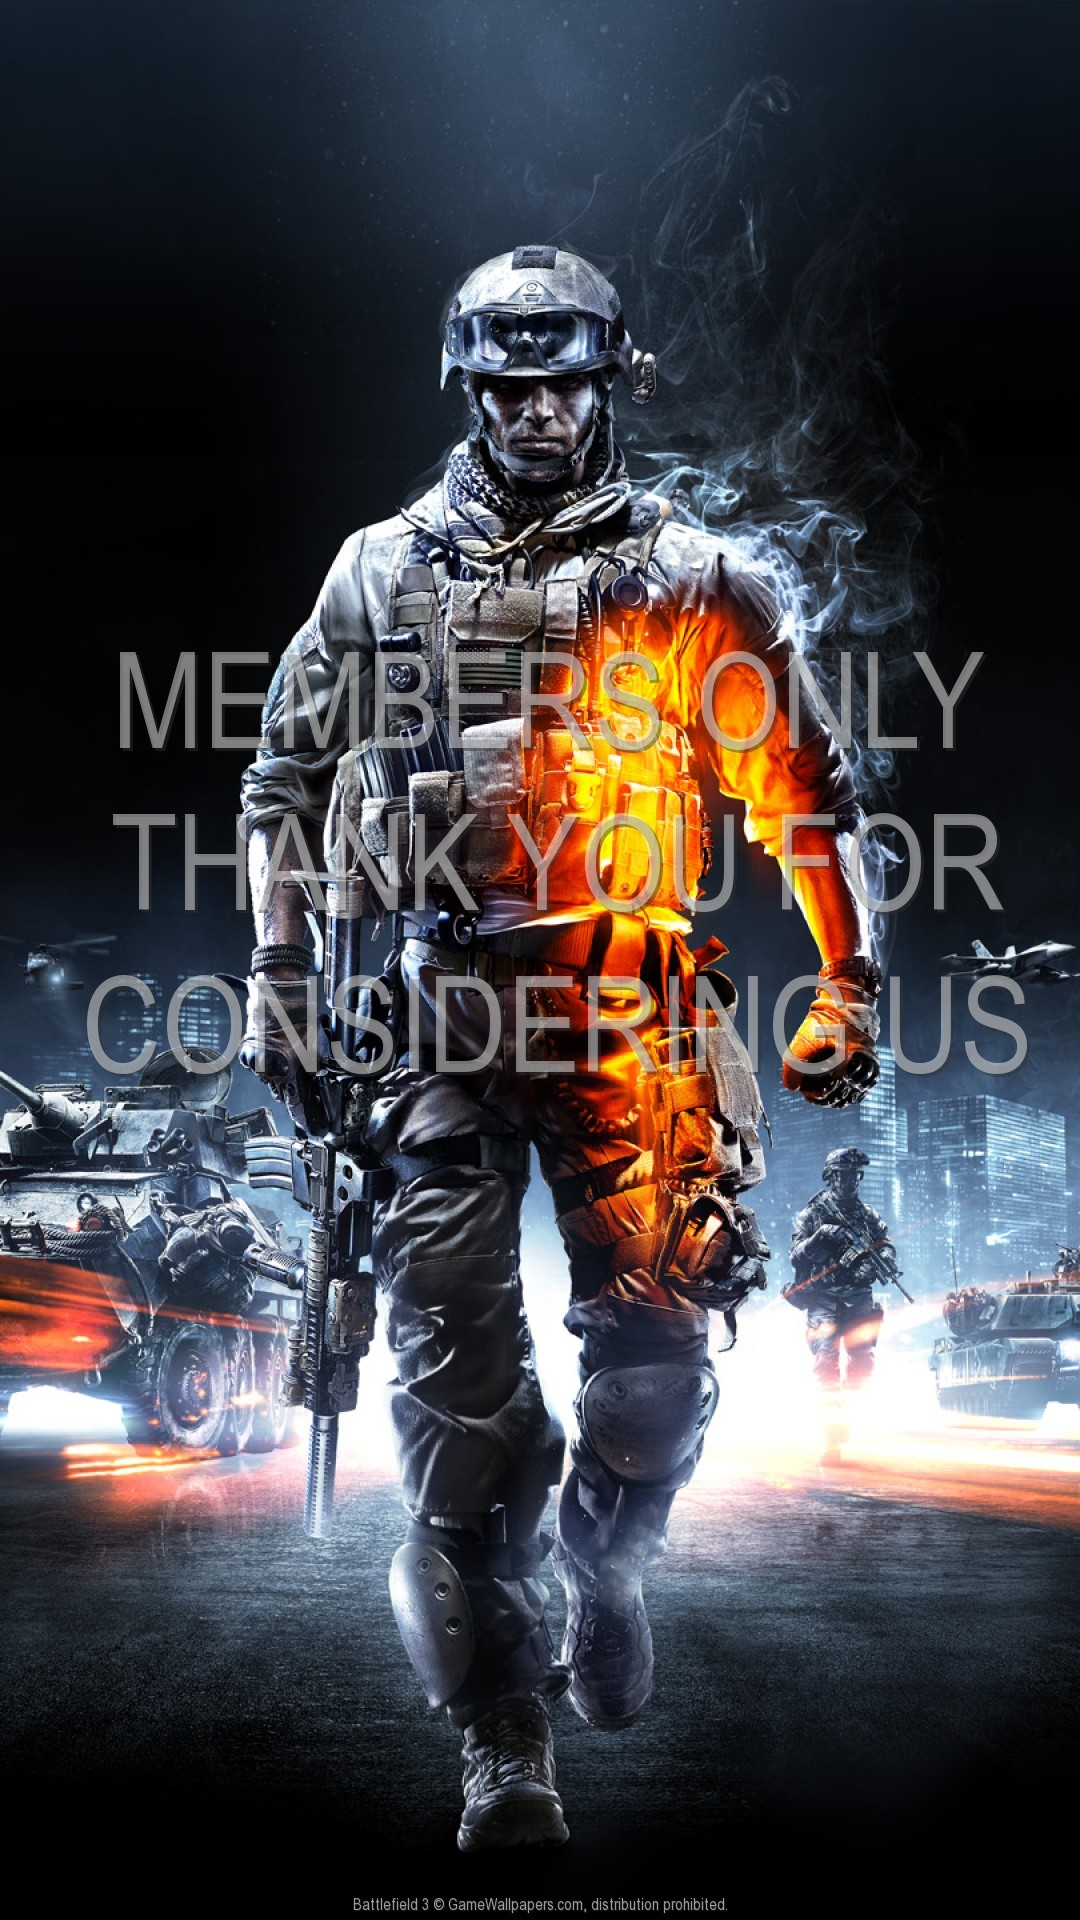 1080x1920 Battlefield 3 1920x1080 Mobile wallpaper or background 01